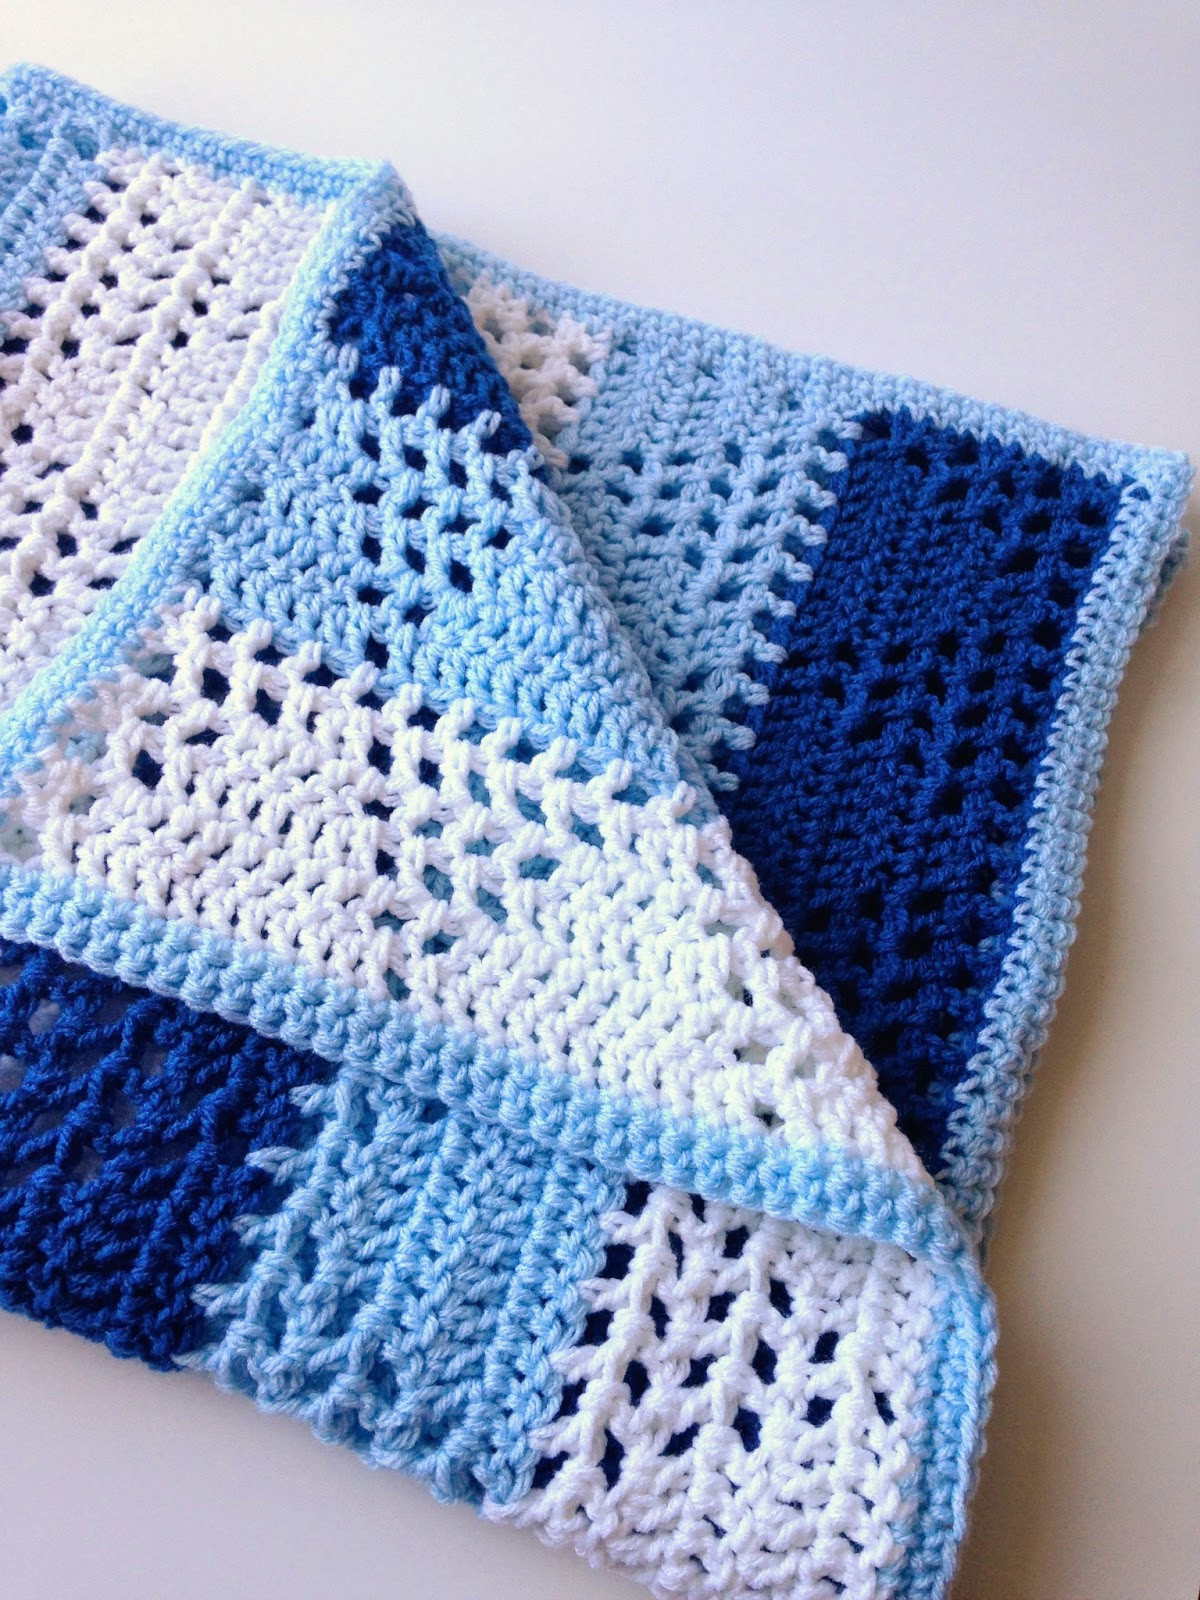 Baby Boy Crochet Blanket Patterns Awesome 5 Little Monsters Triangles & Stripes Baby Blanket Of Baby Boy Crochet Blanket Patterns Beautiful Marvelous Monkey Blankets Free Crochet Patterns